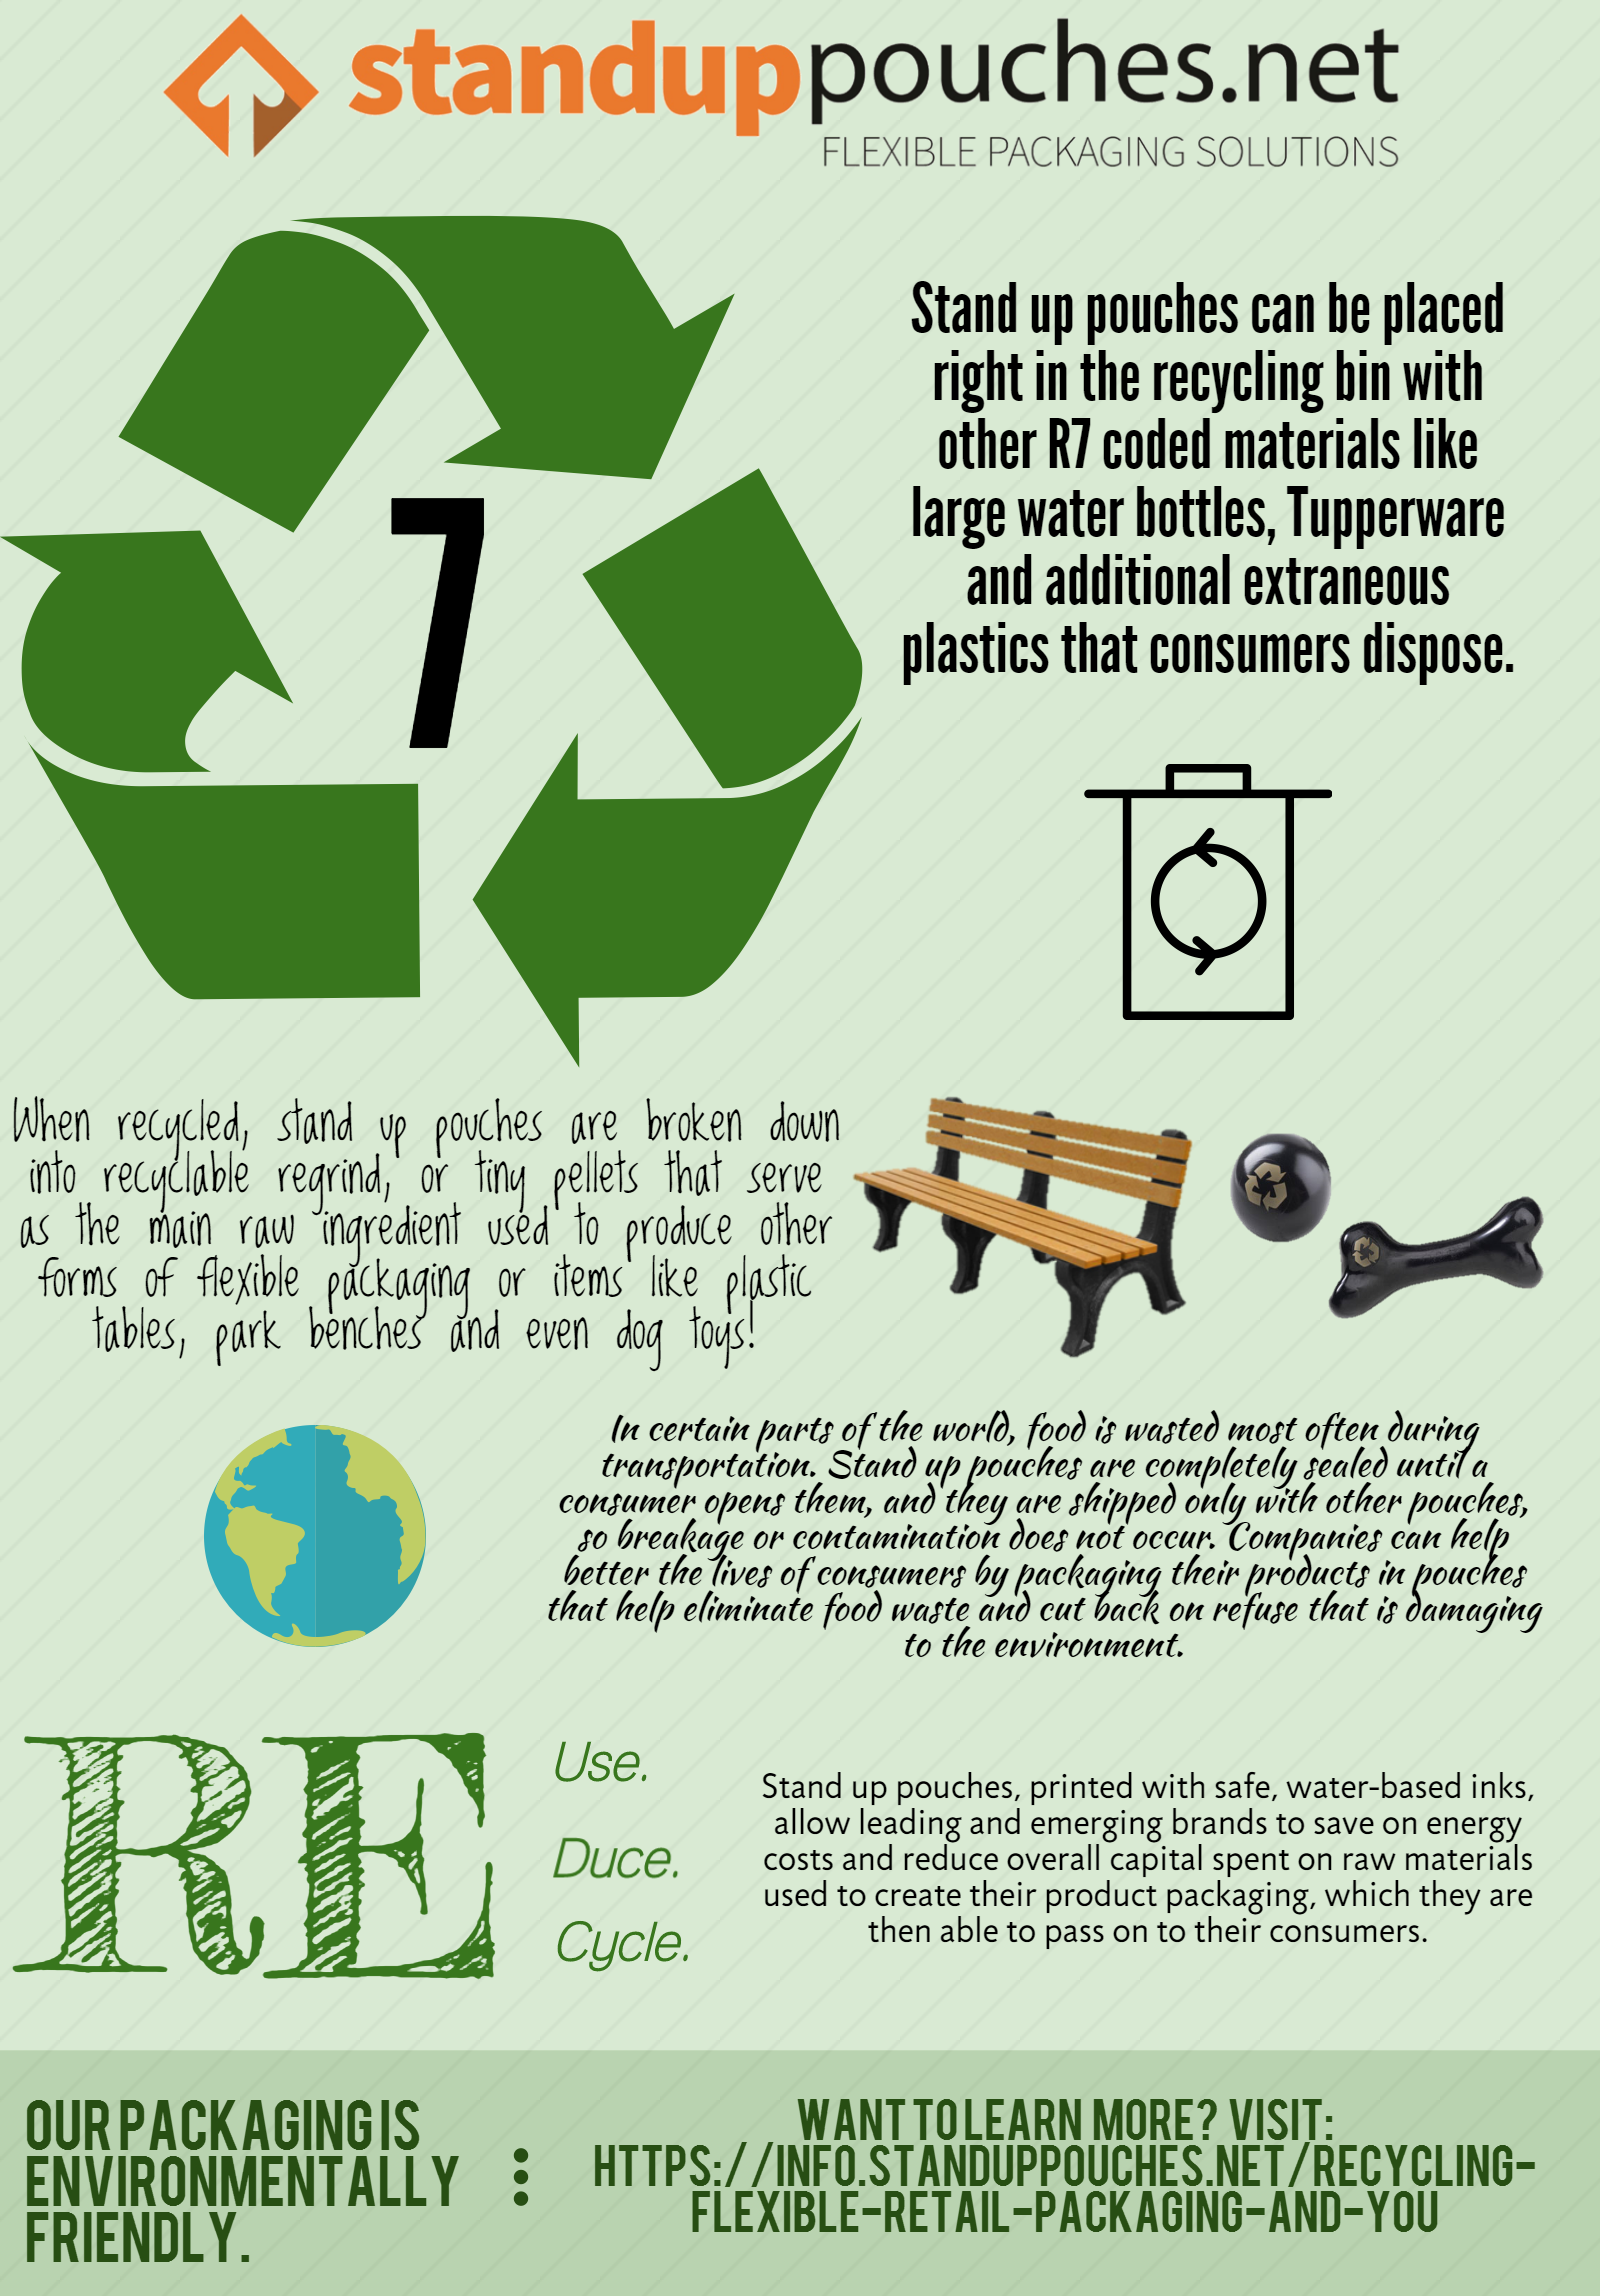 recyclable-flexible-packaging